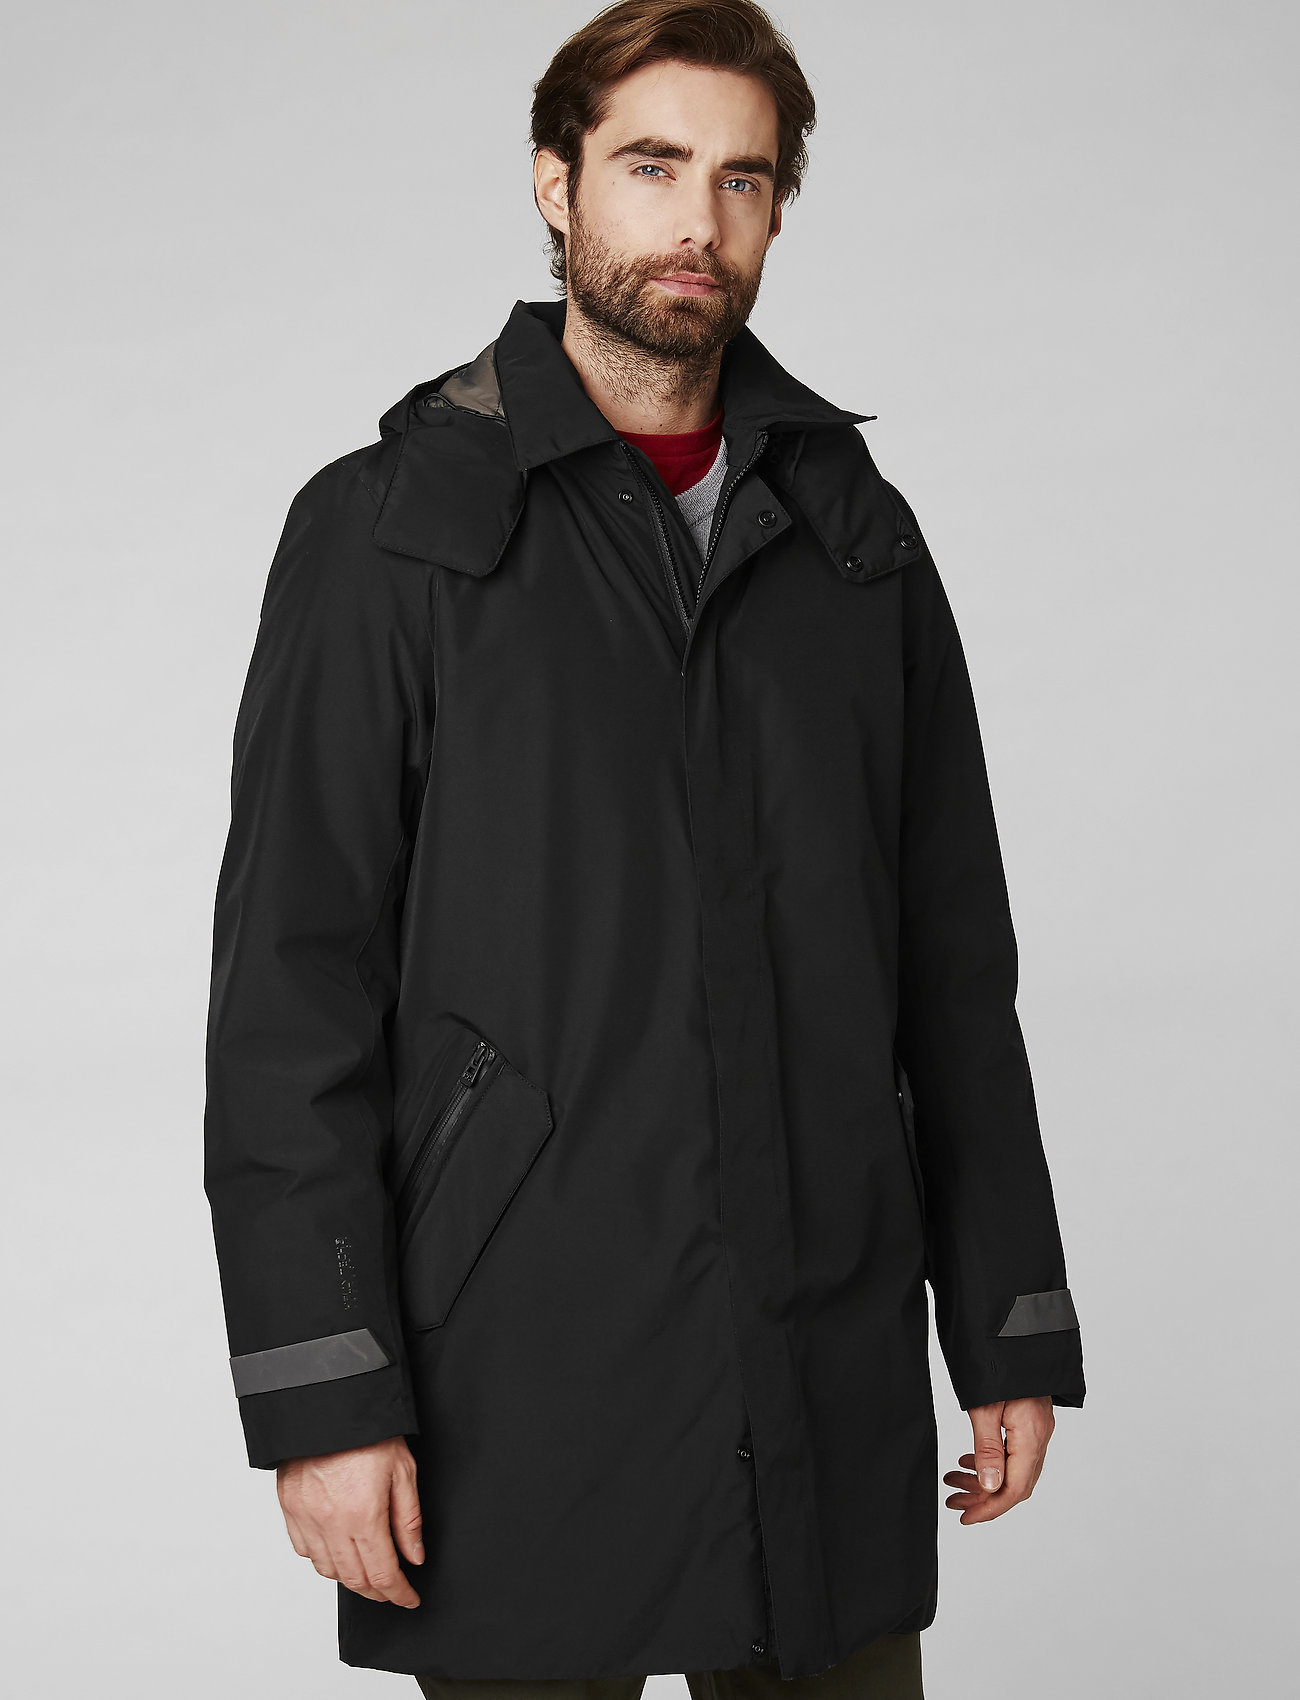 Helly Hansen - OSLO PADDED COAT - insulated jackets - black - 0